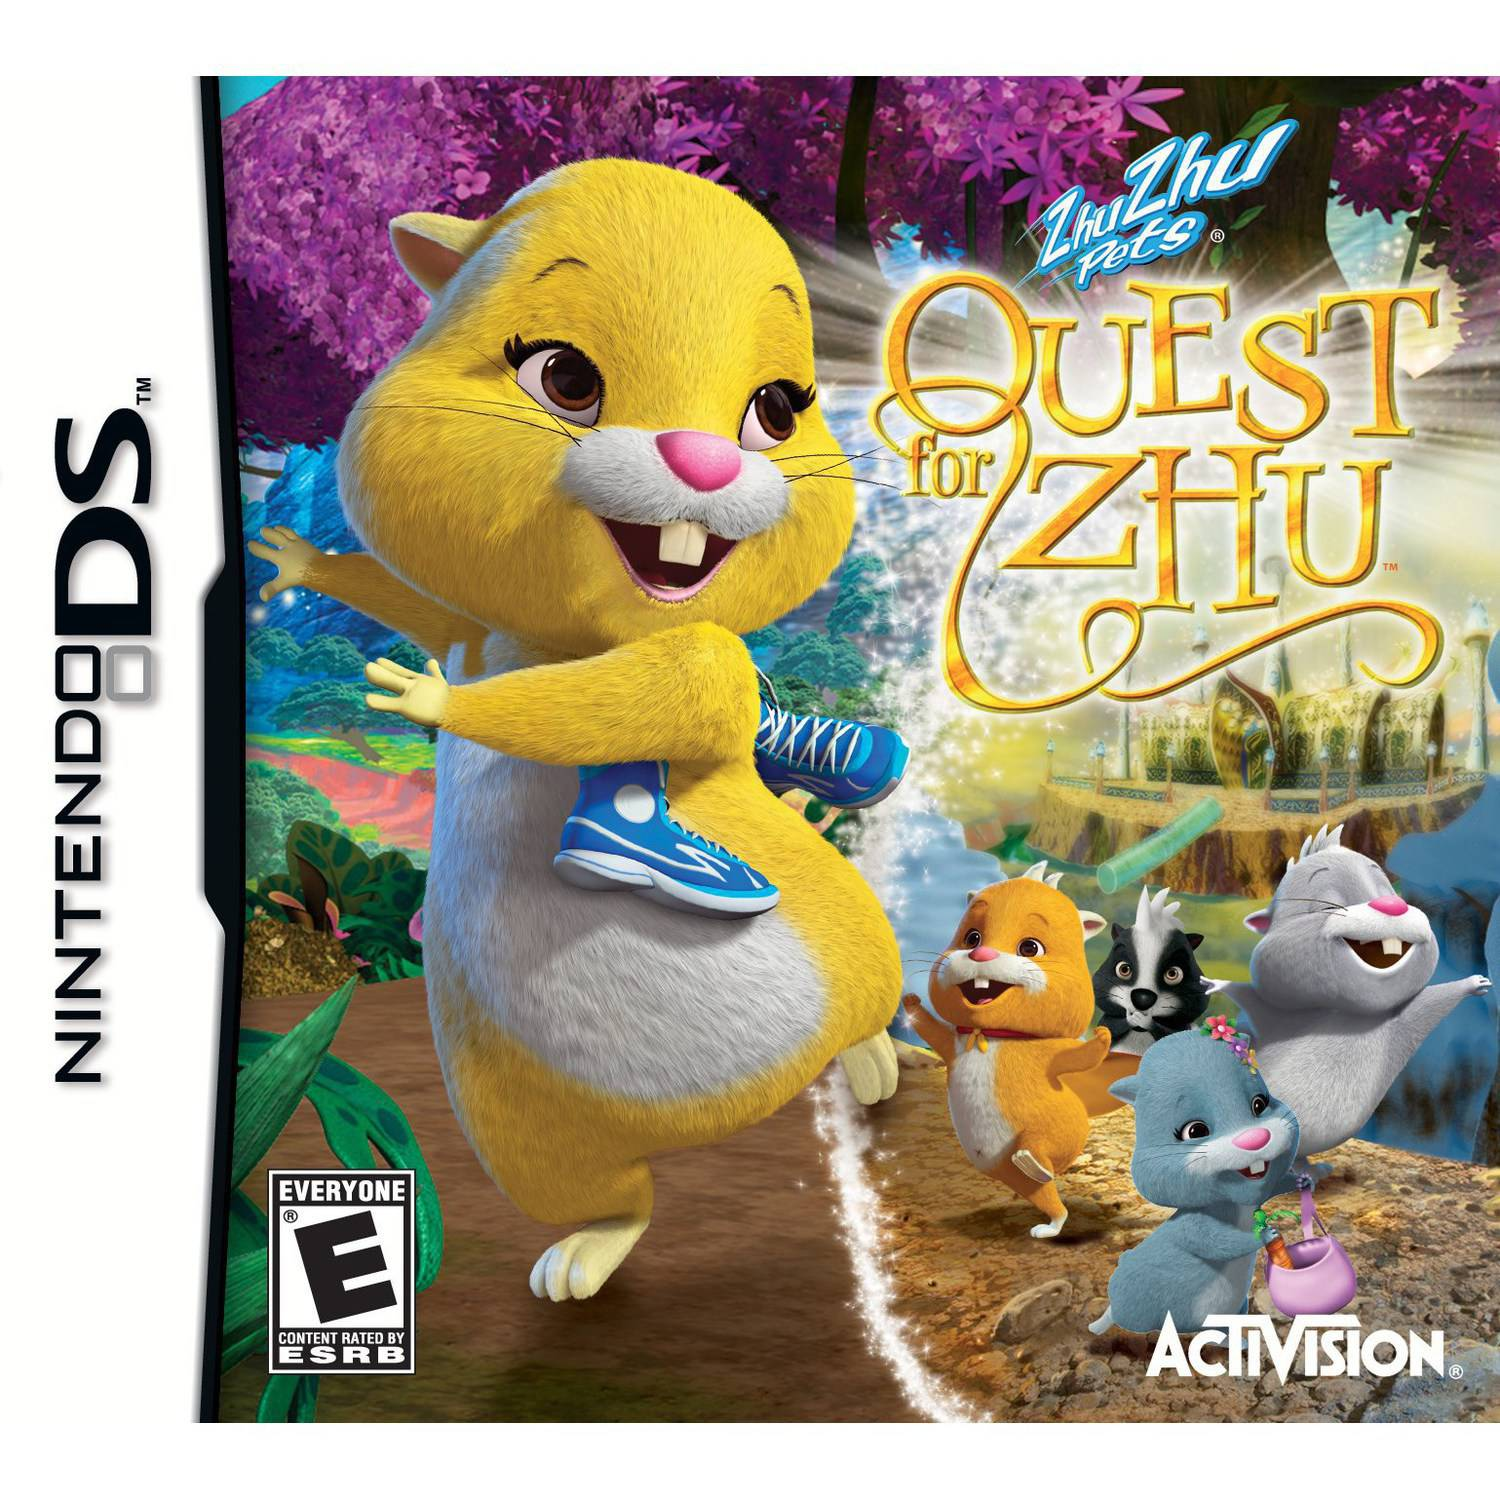 Zhu Zhu Pets: Quest For Zhu (DS) - Pre-Owned